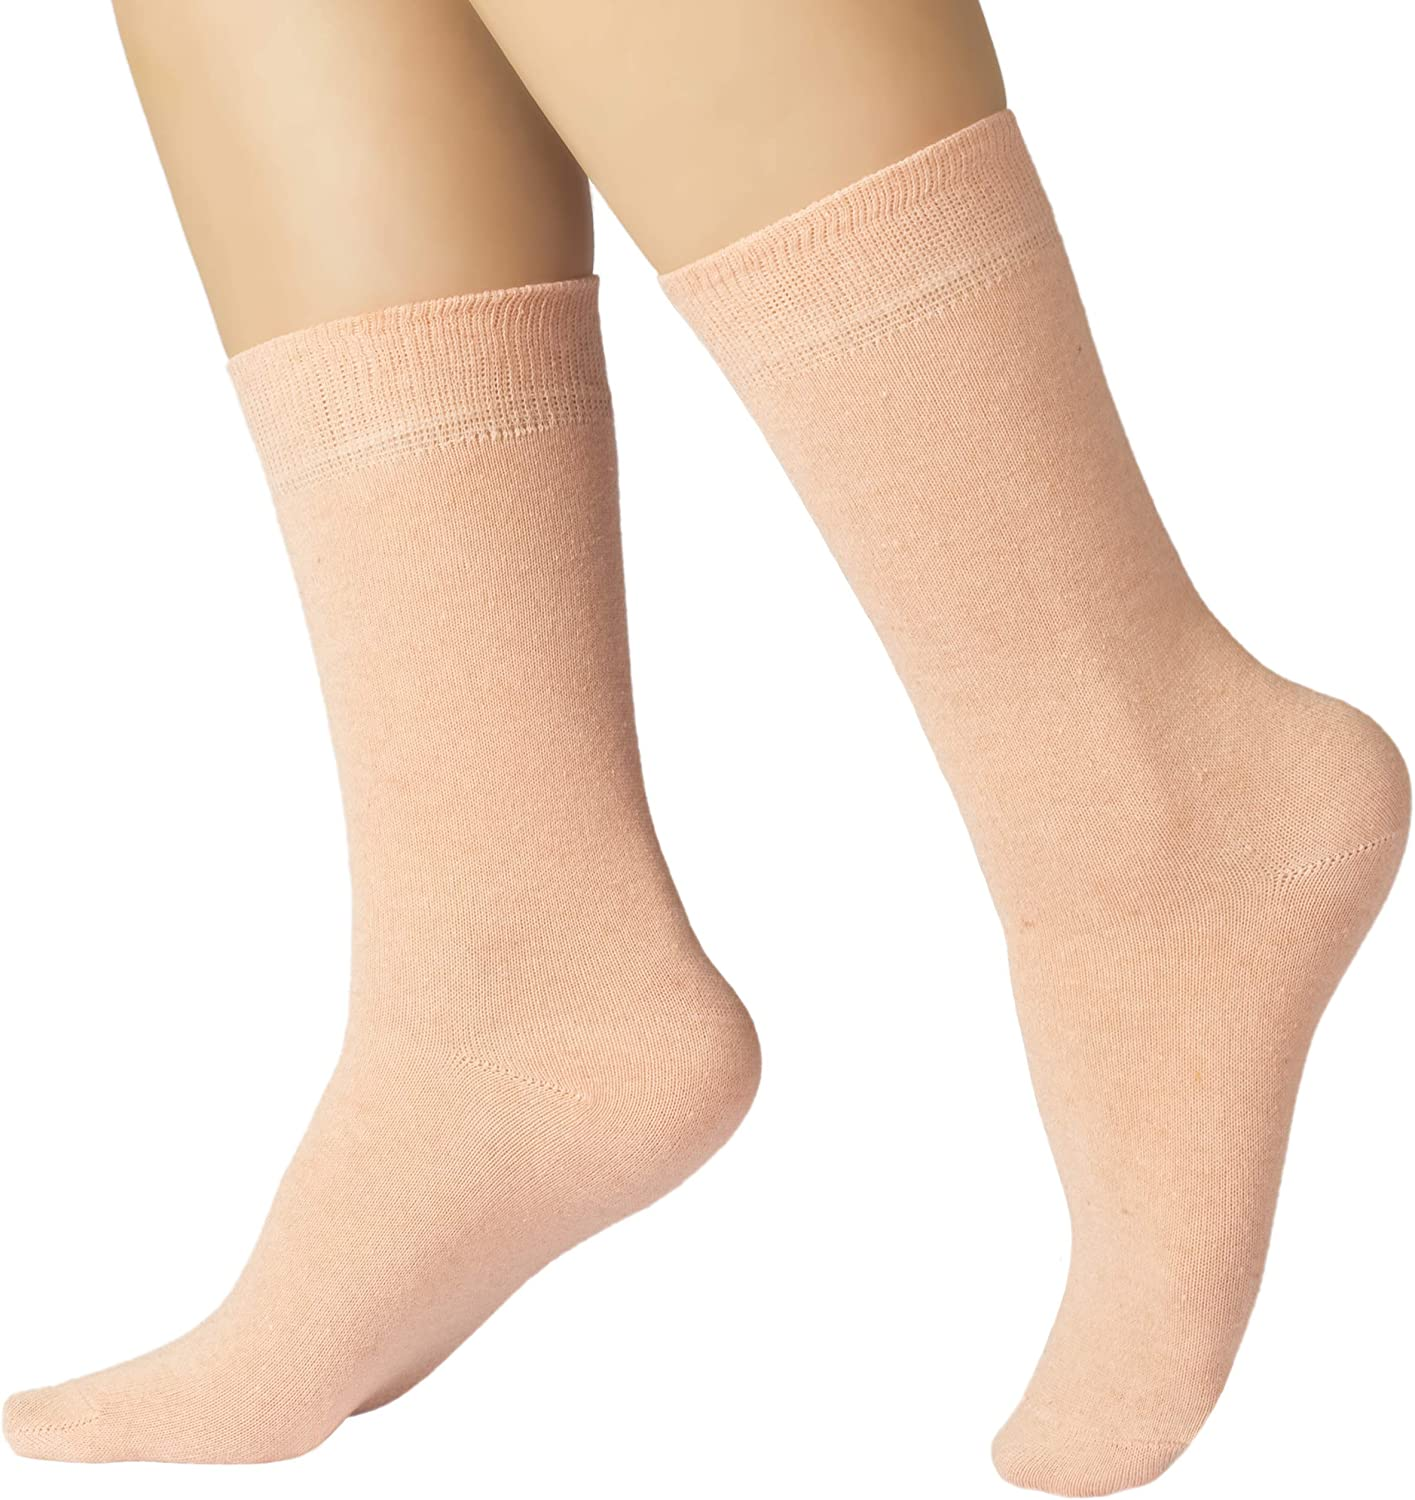 4 Pairs Women's Eco Friendly Cotton Dress Socks / Crew Length / Business Casual